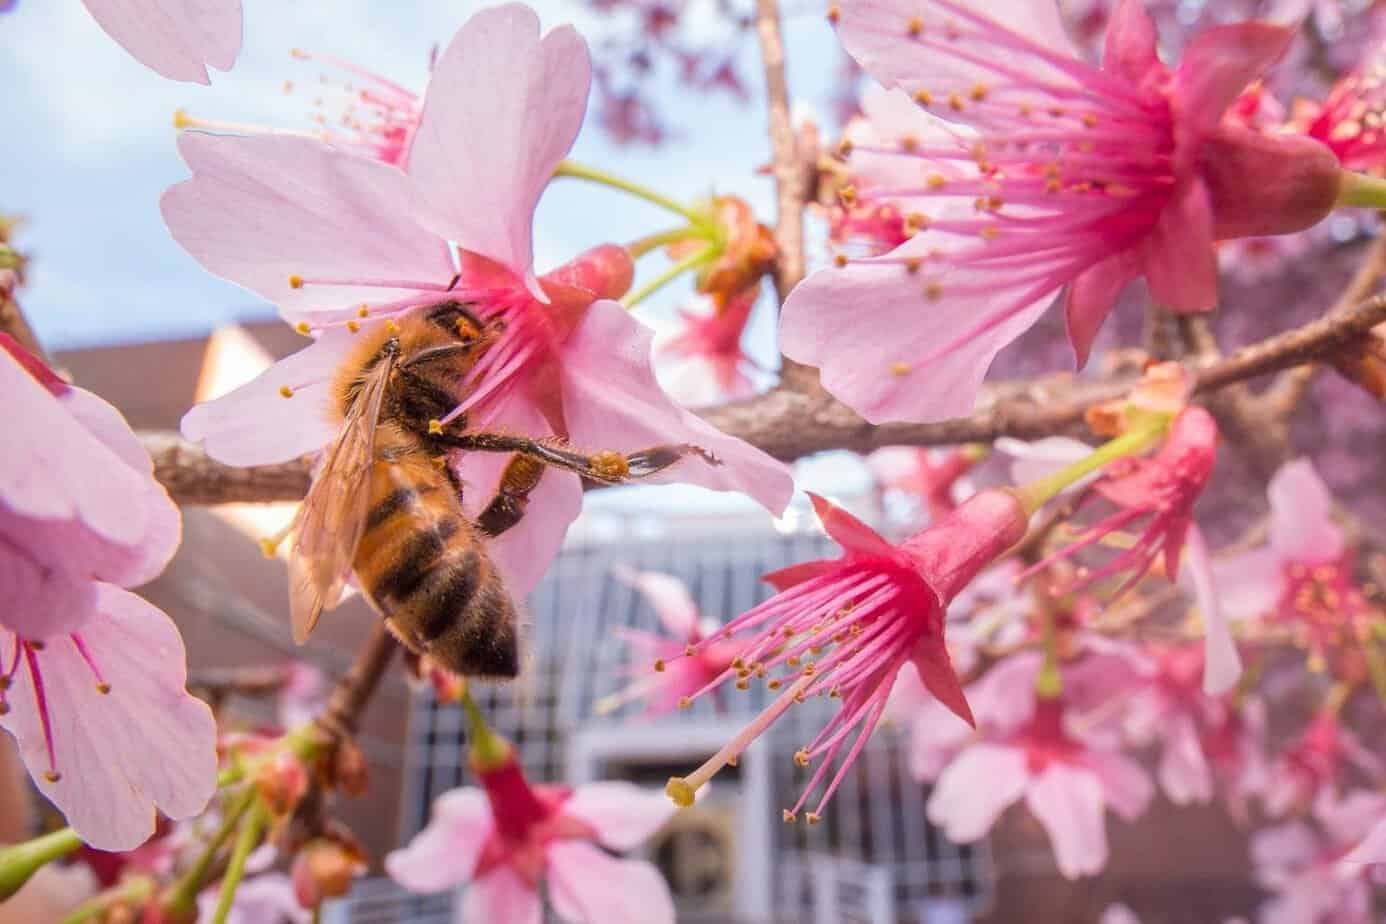 A honey bee worker collecting nectar. Bees rely on flowers as their primary food source, but some turn to human sugars in urban environments. (photo: Lauren Nichols)